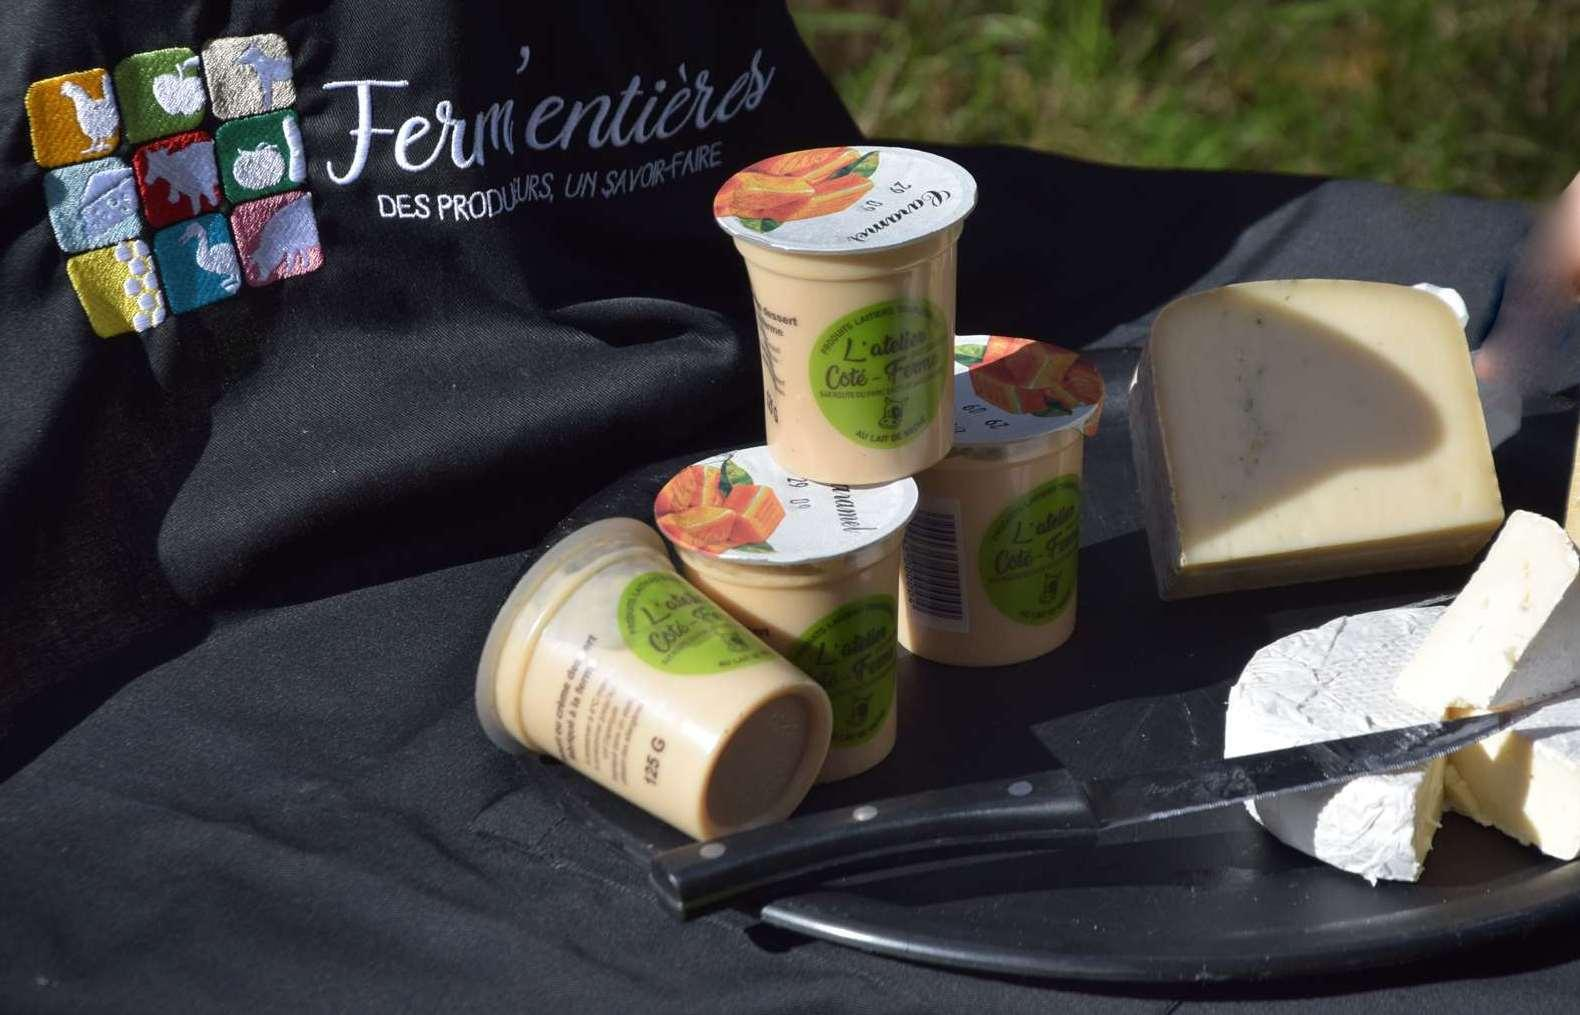 Fromage atelier cote ferme